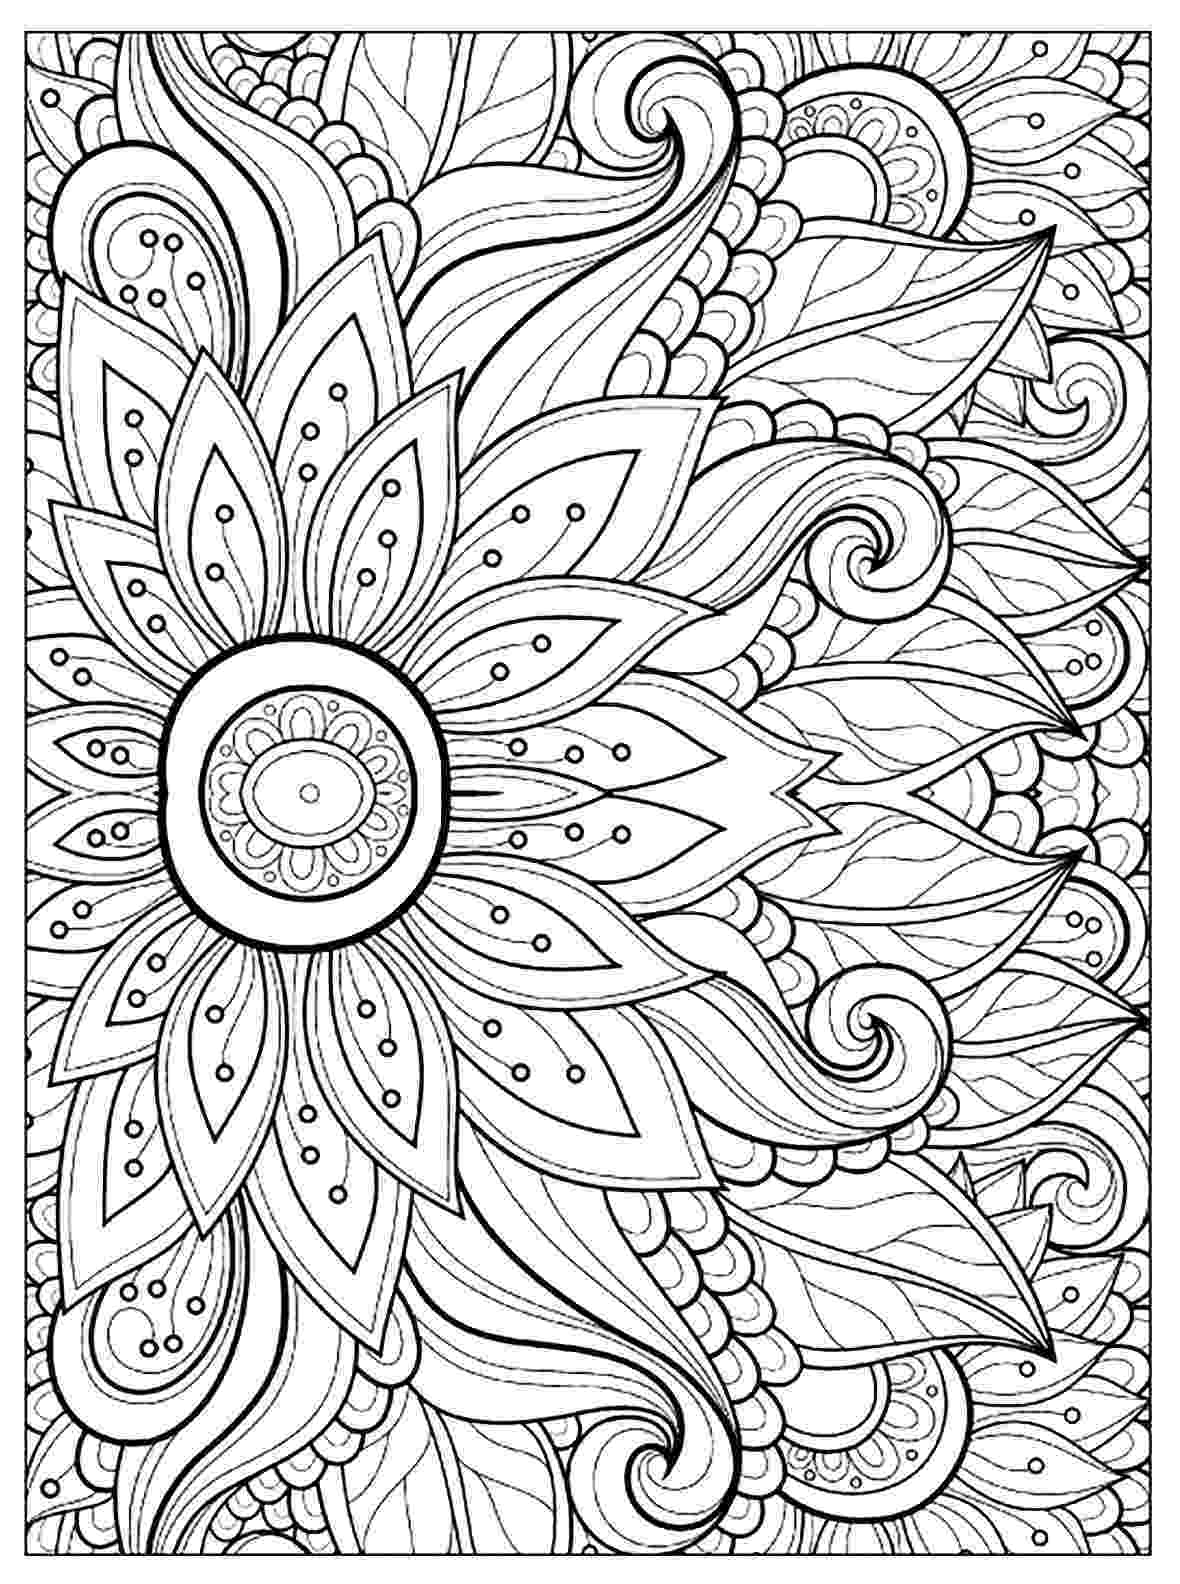 pictures of flowers coloring pages flowers coloring pages minister coloring flowers of coloring pictures pages